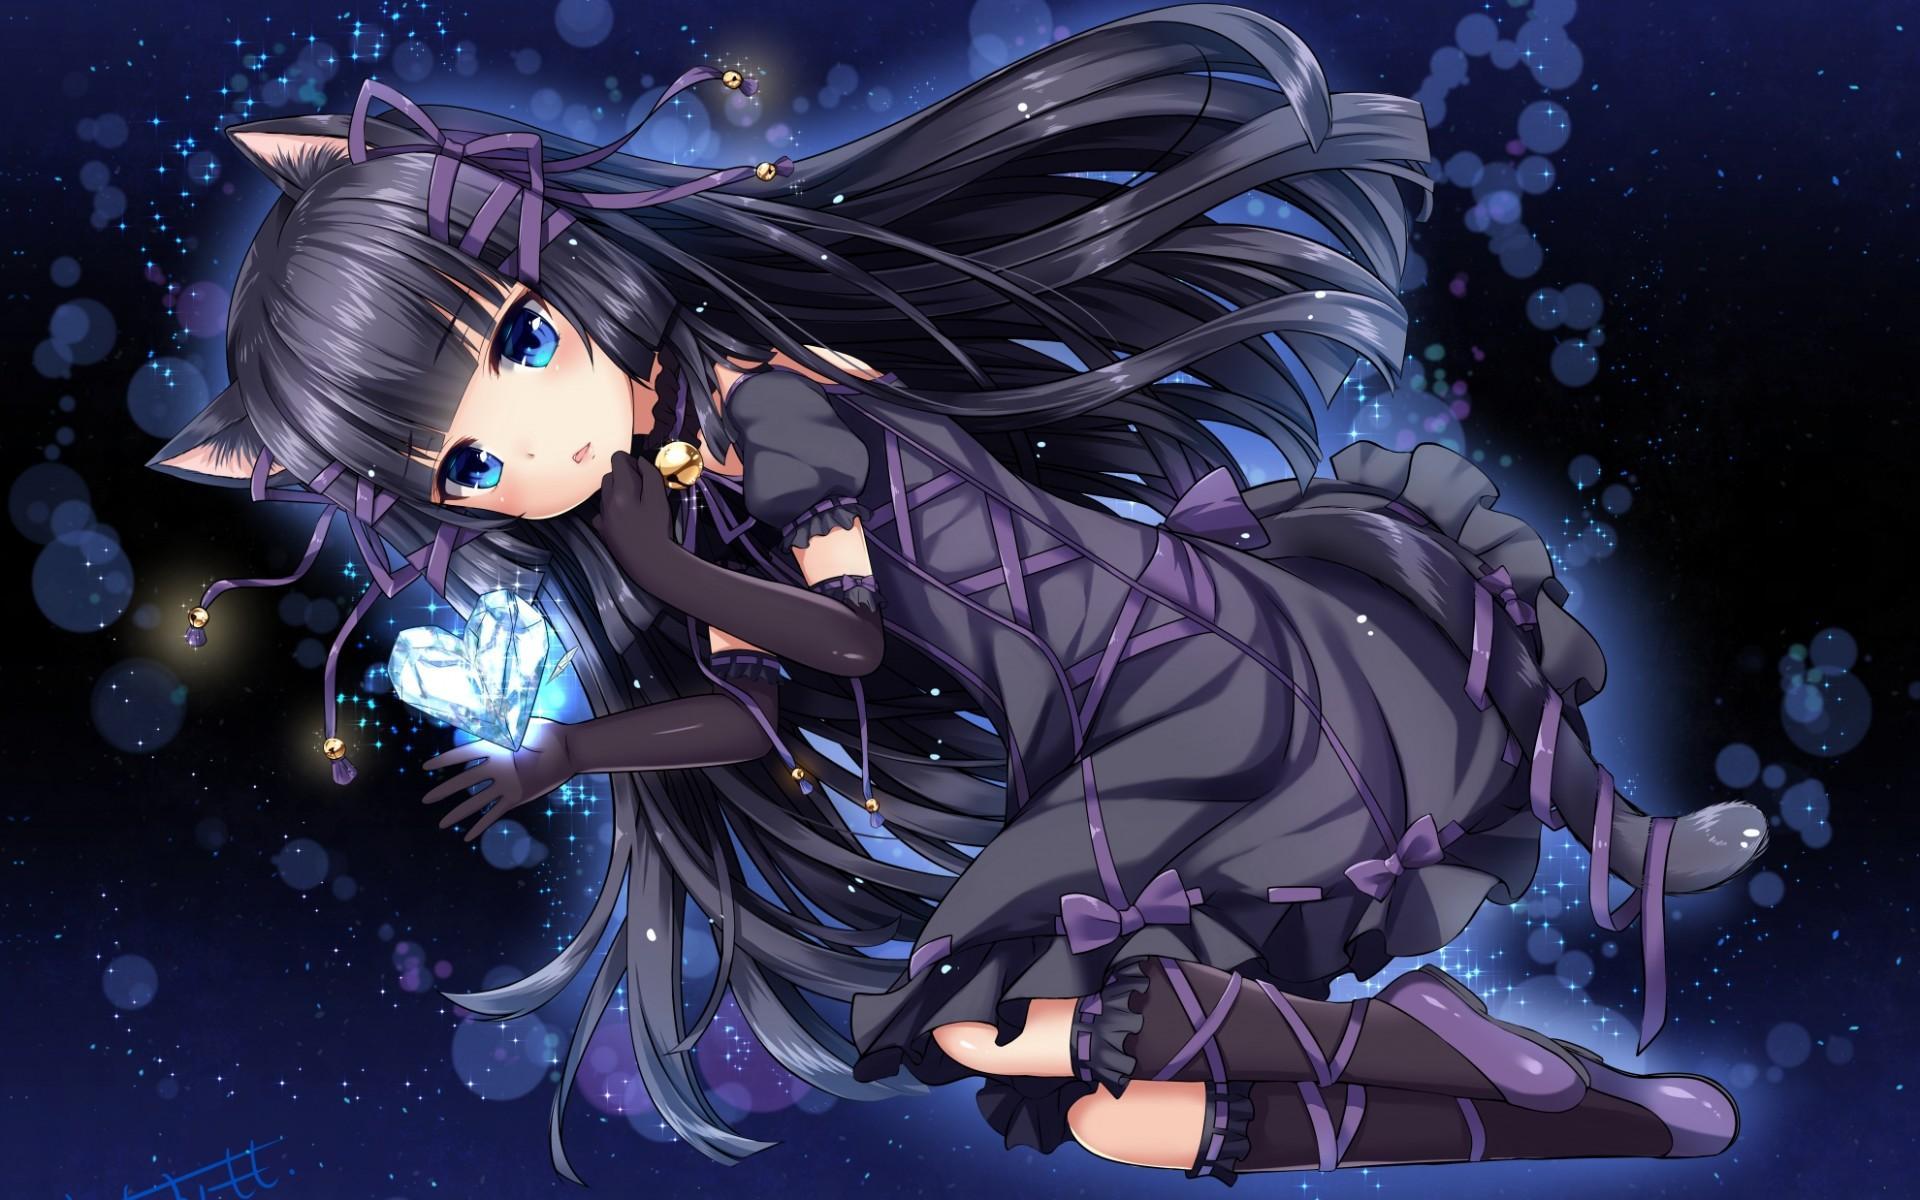 Galaxy Anime Cat Girl Wallpaper Anime Wallpapers